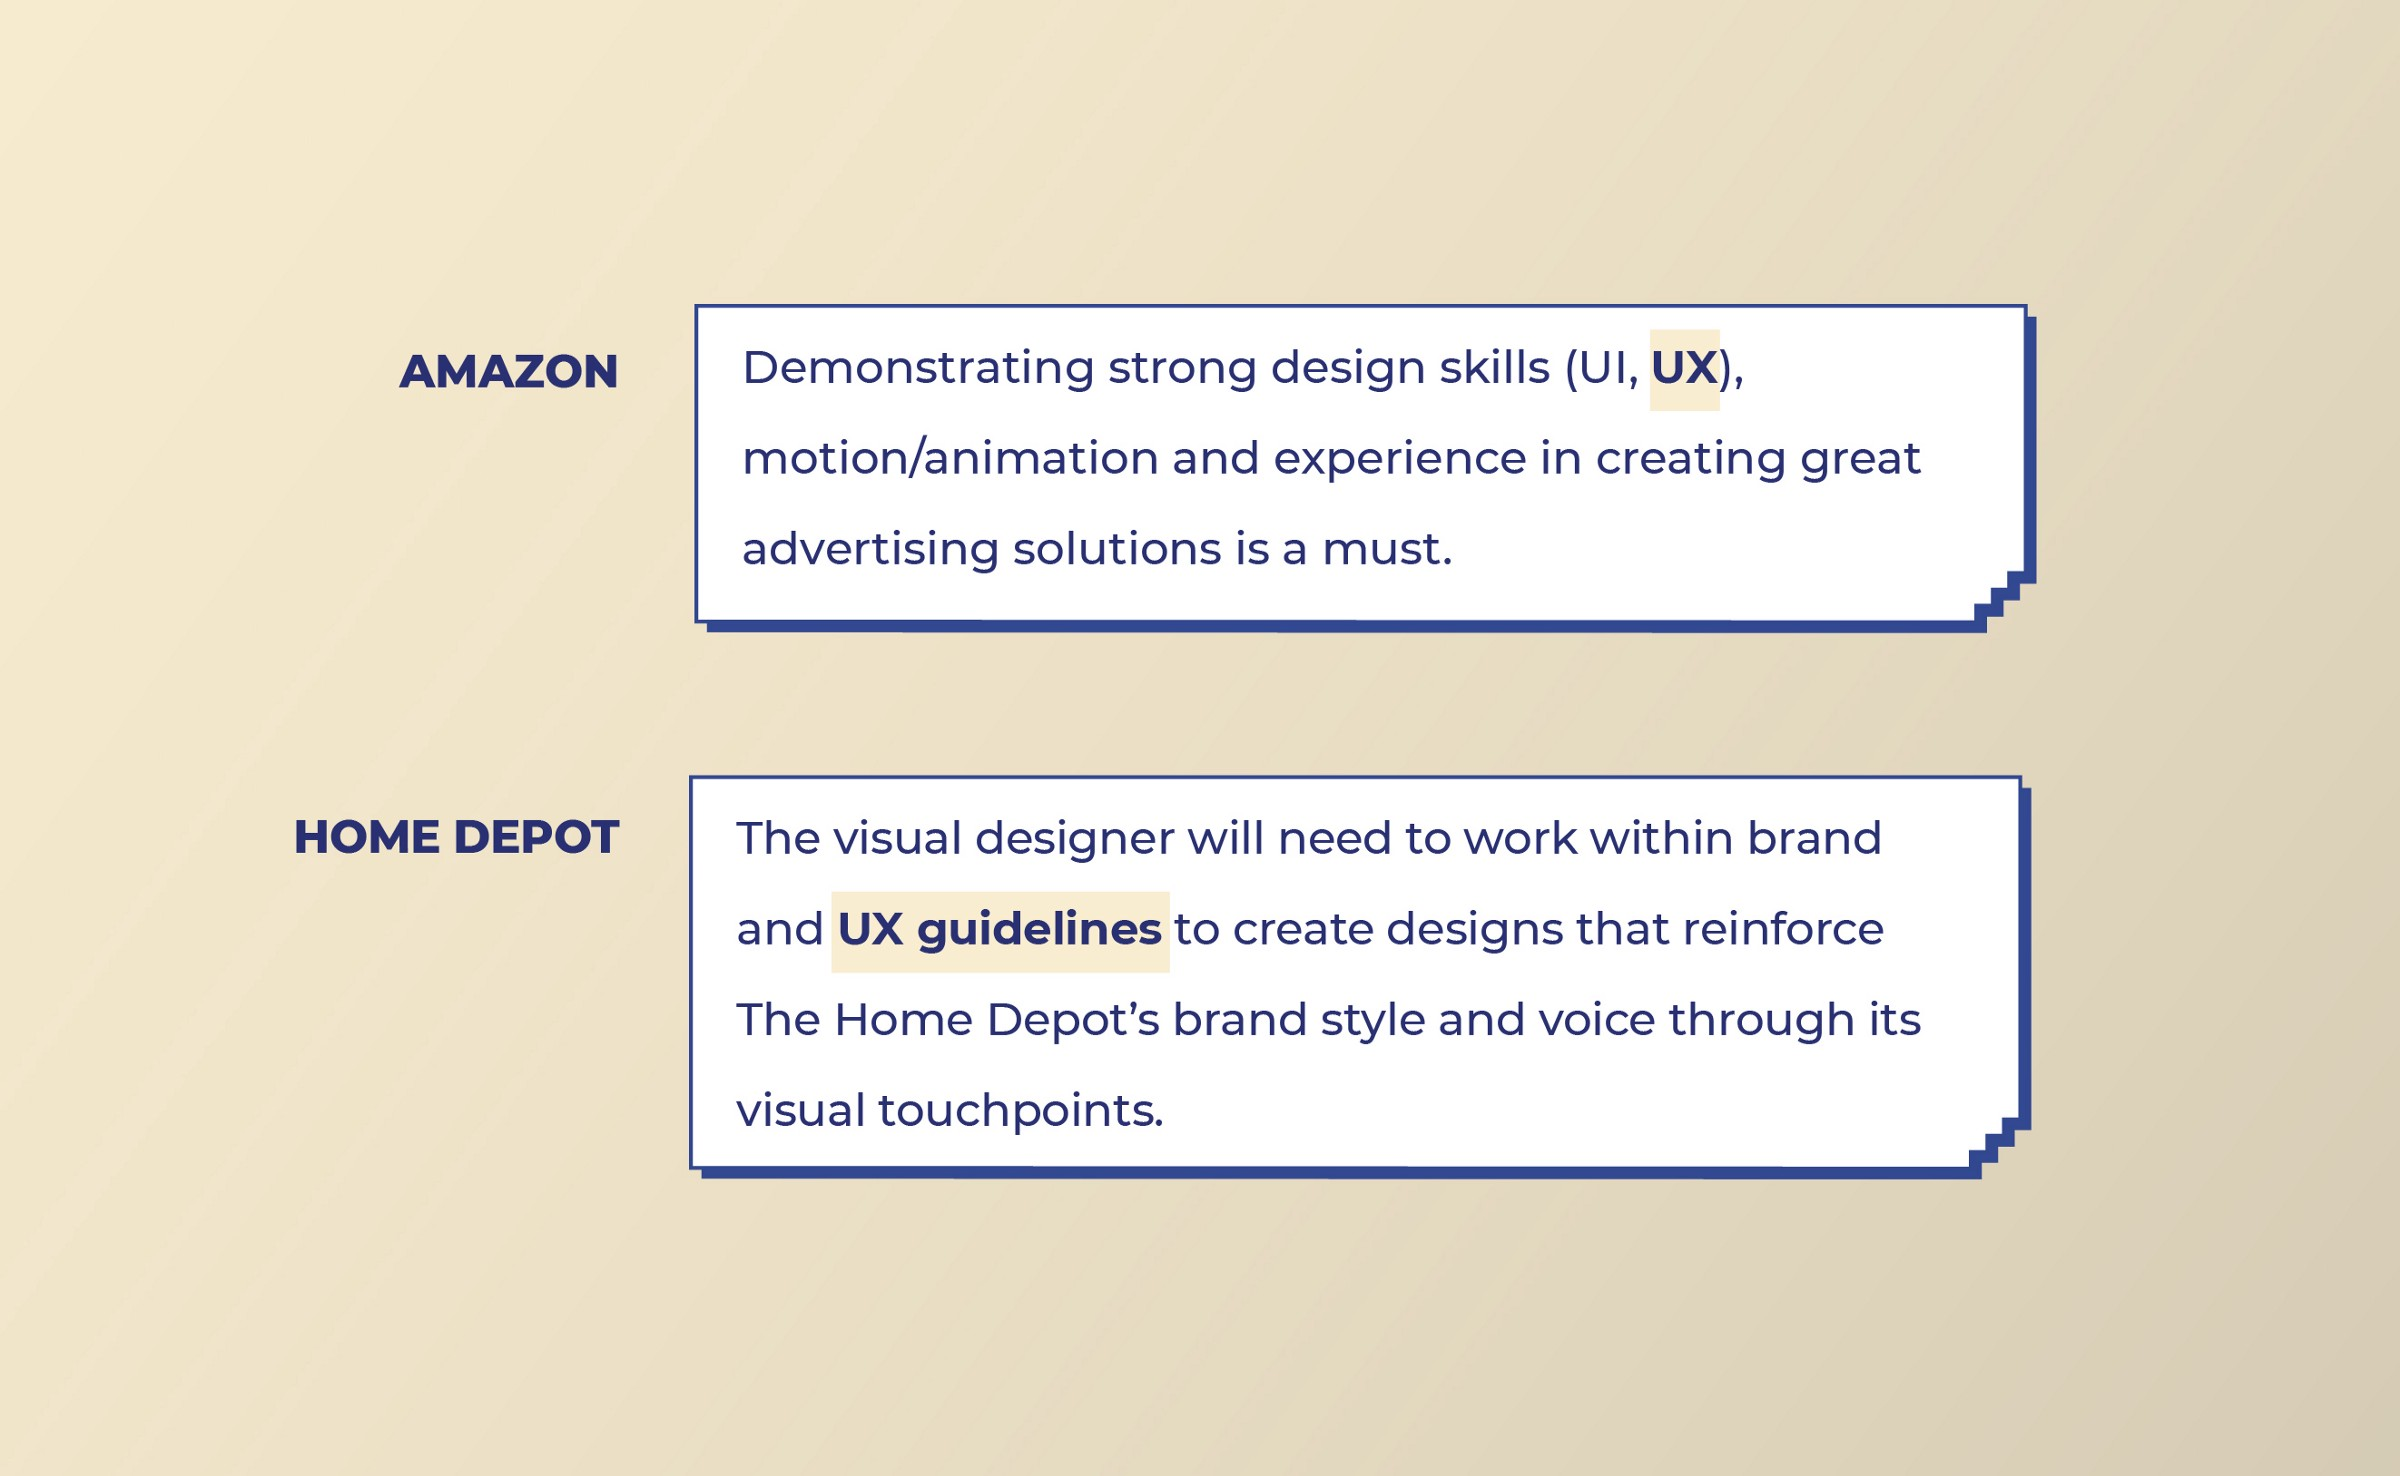 Amazon and Home Depot look for UX work from Visual designers